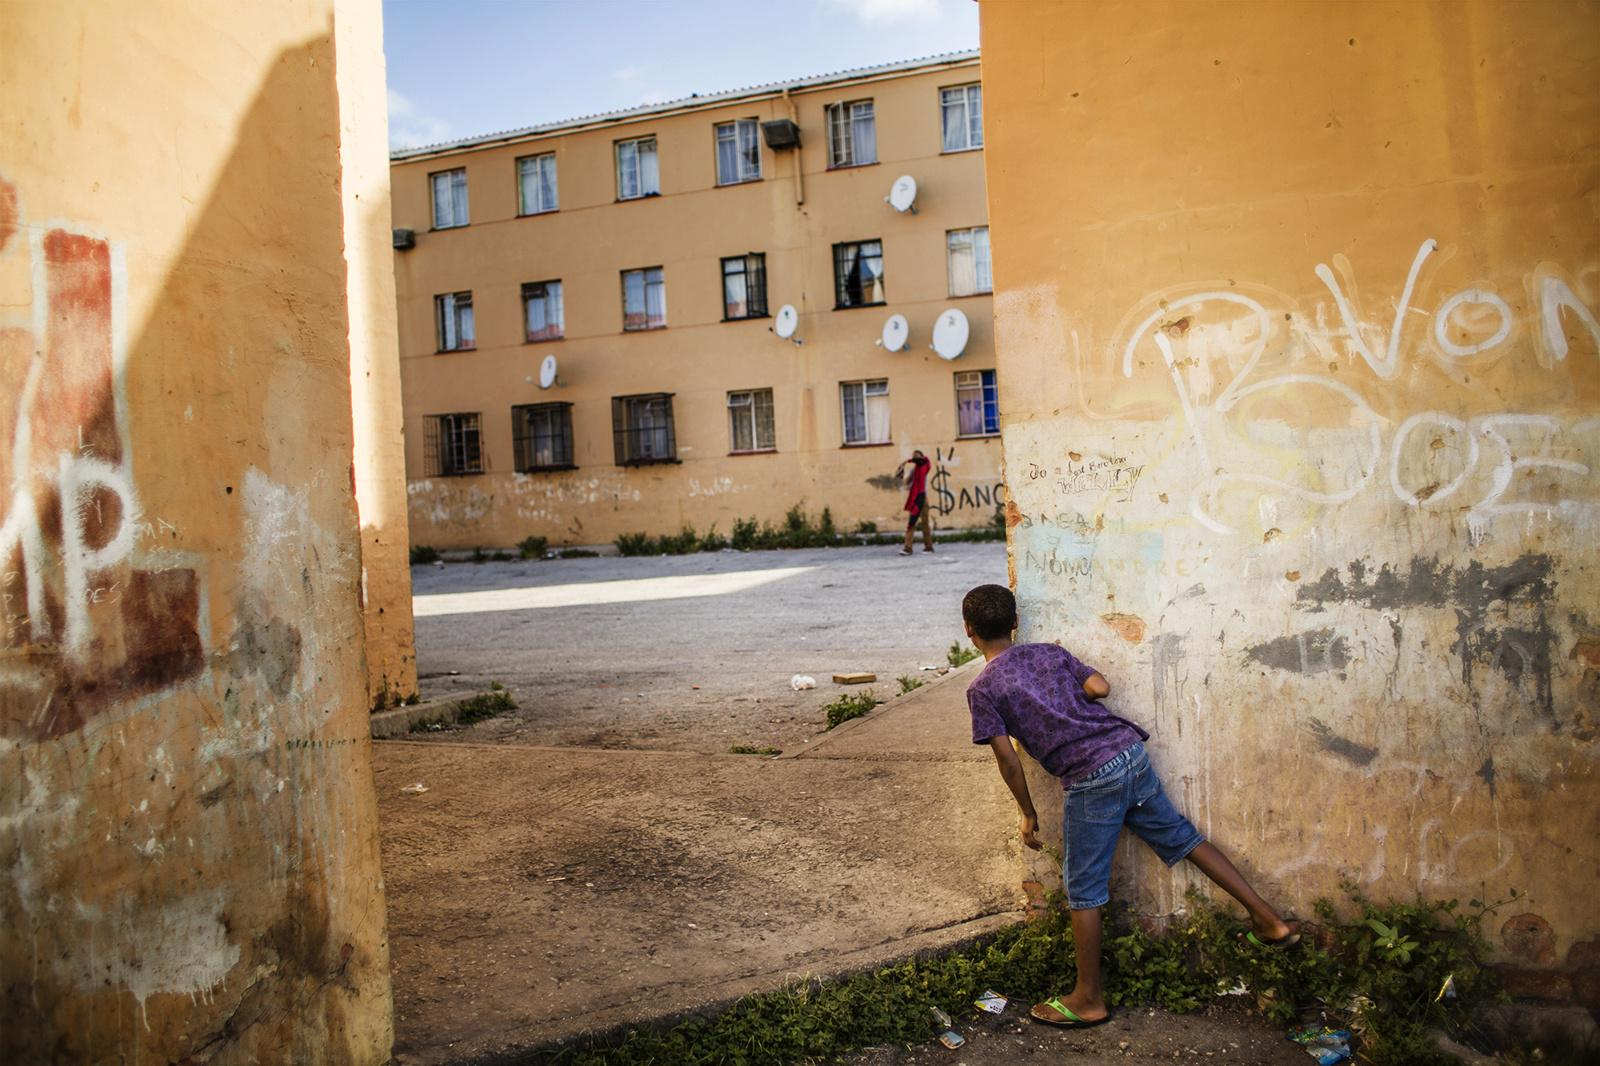 SCHAUDERVILLE, PORT ELIZABETH, SOUTH AFRICA - FEBRUARY 27, 2015: Children play at a flat complex in Schauderville, Port Elizabeth, South Africa on February 27, 2015. Schauderville is part of the Northern areas of Port Elizabeth where gangsterism is particularly high and sought after as an alternative means of survival and sense of belonging within the most marginalised of South Africa's ethnic groups, the coloured communities.